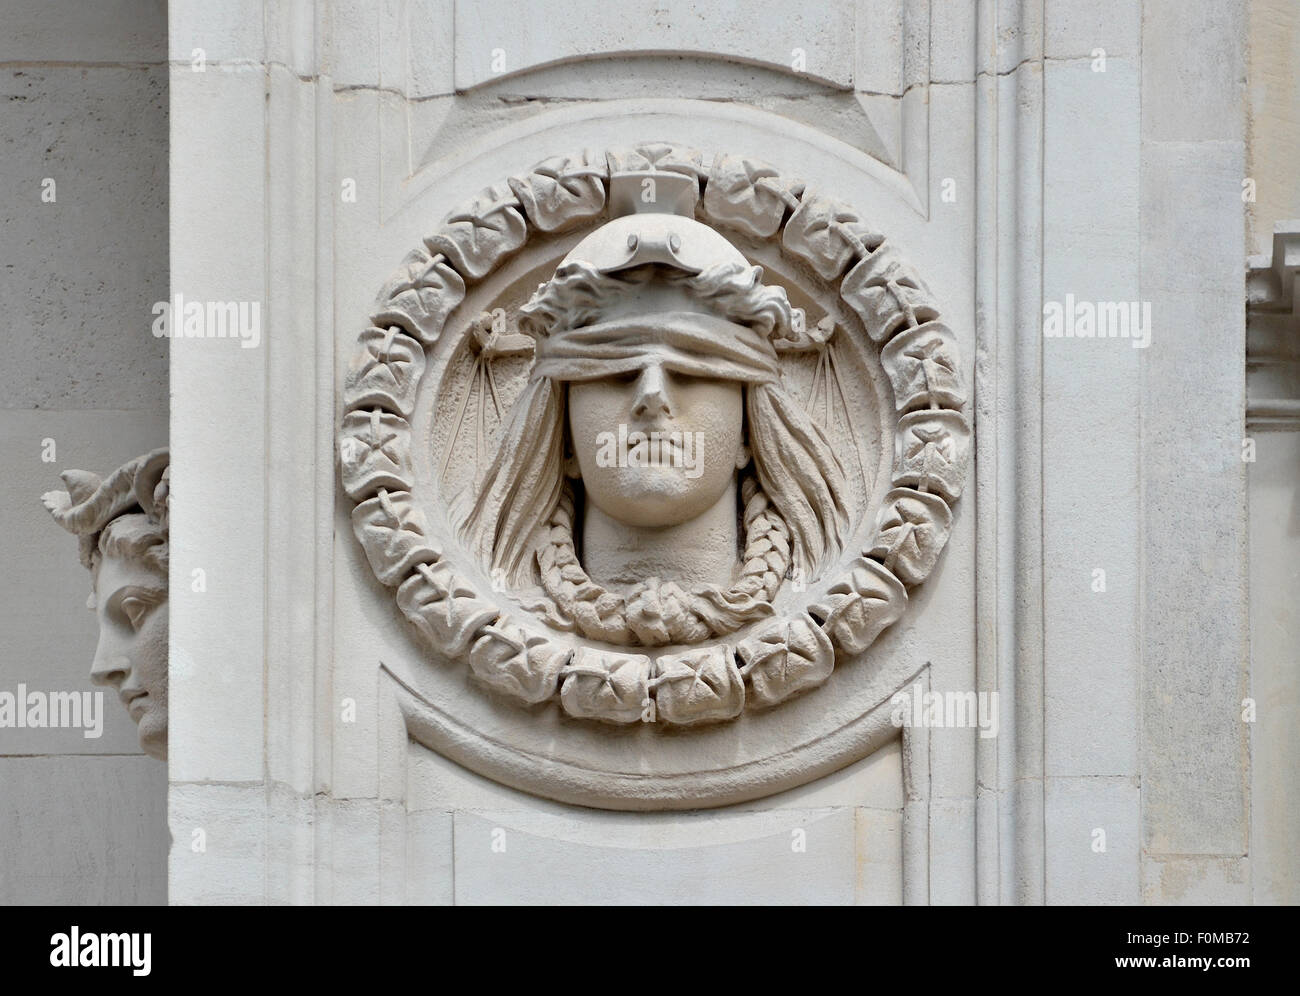 London, England, UK. Entrance to the Temple area seen from the embankment - Blind Justice - Stock Image